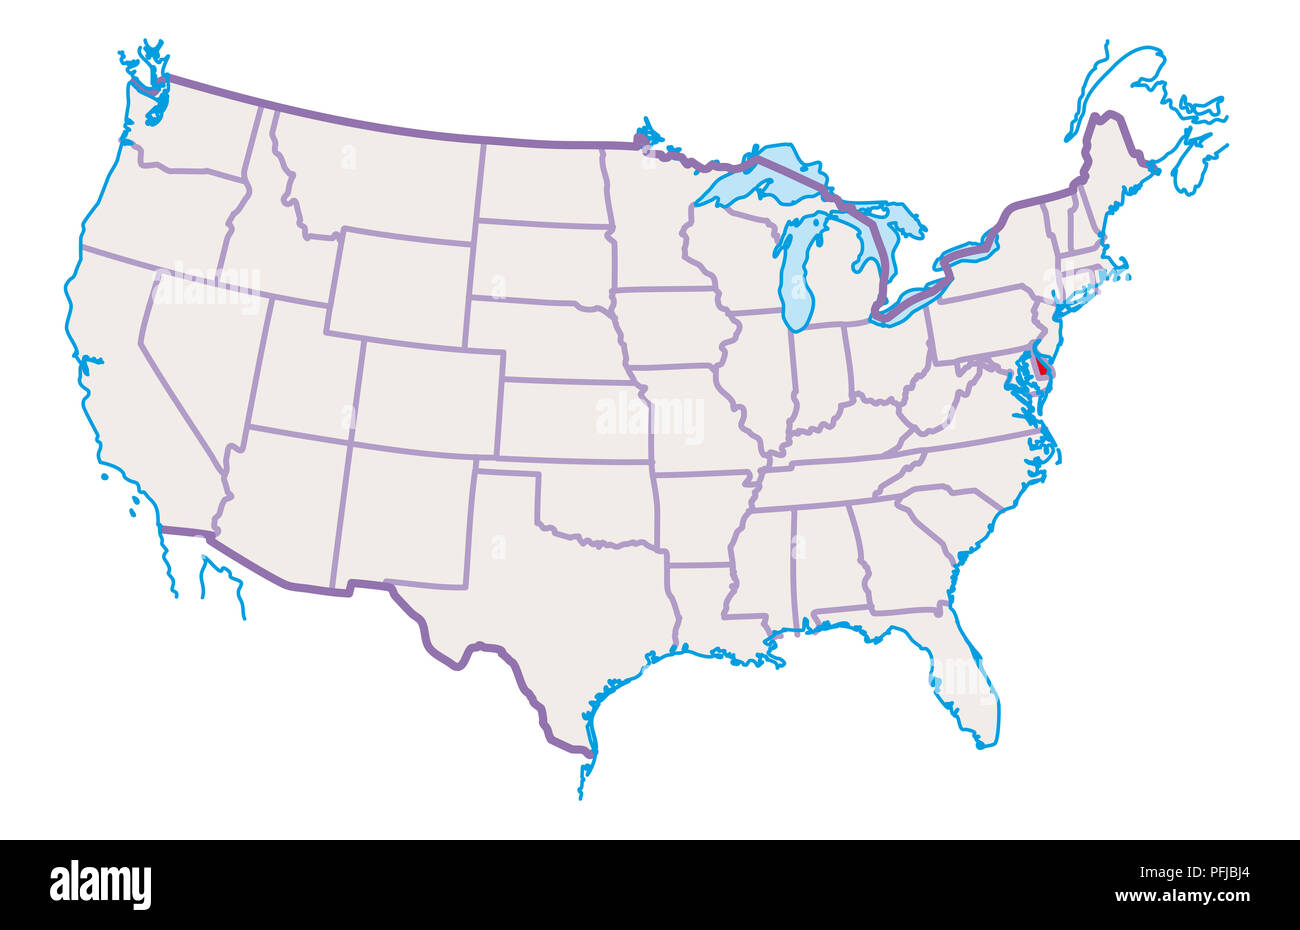 Map of USA, Delaware highlighted in red Stock Photo: 216148524 - Alamy